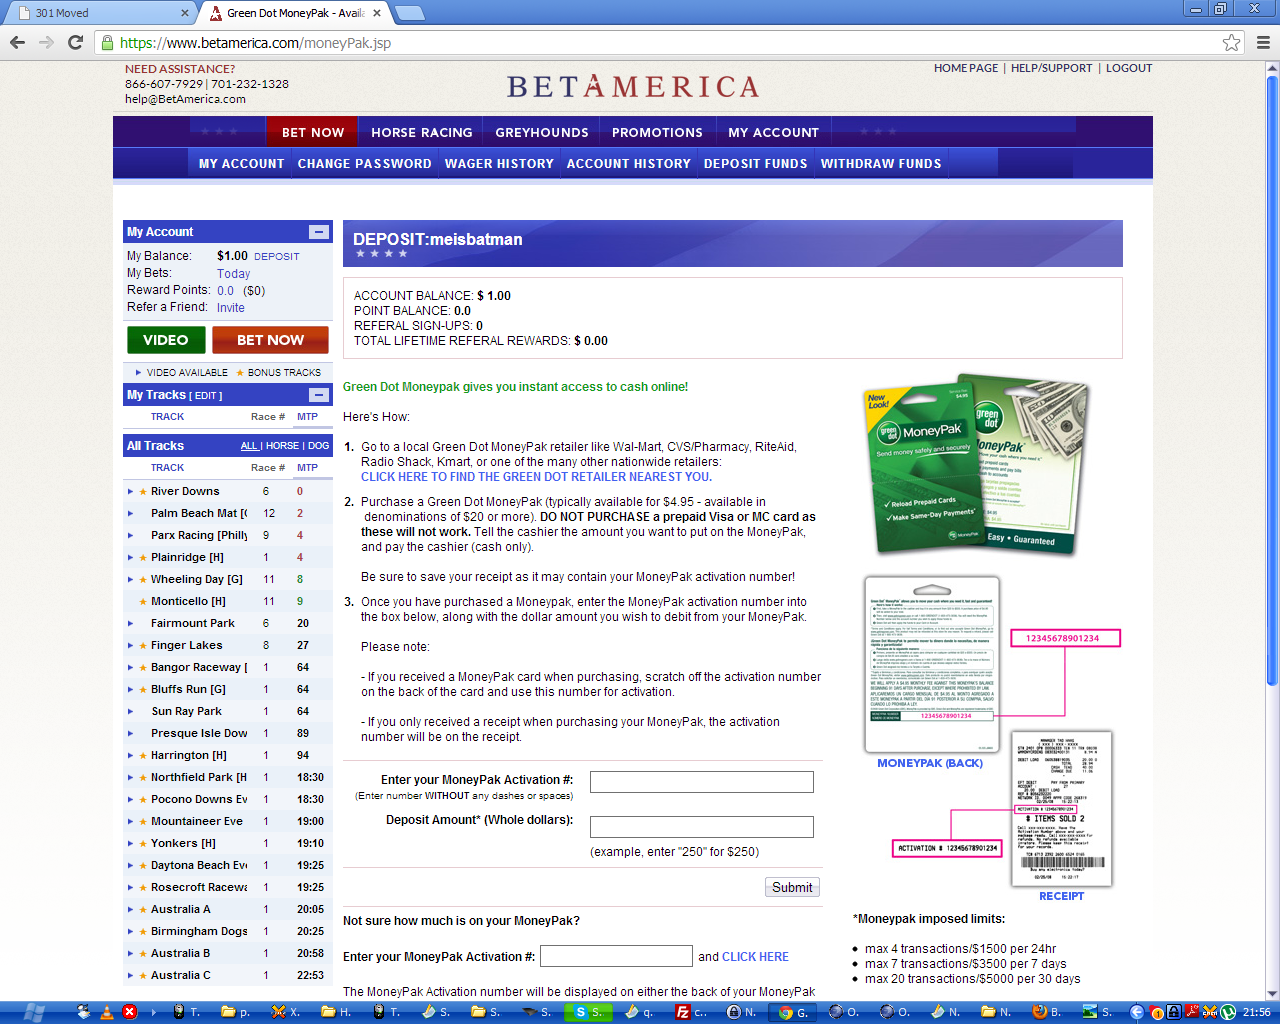 money laundering betamerica com is an online gambling site they probably use this service to launder money